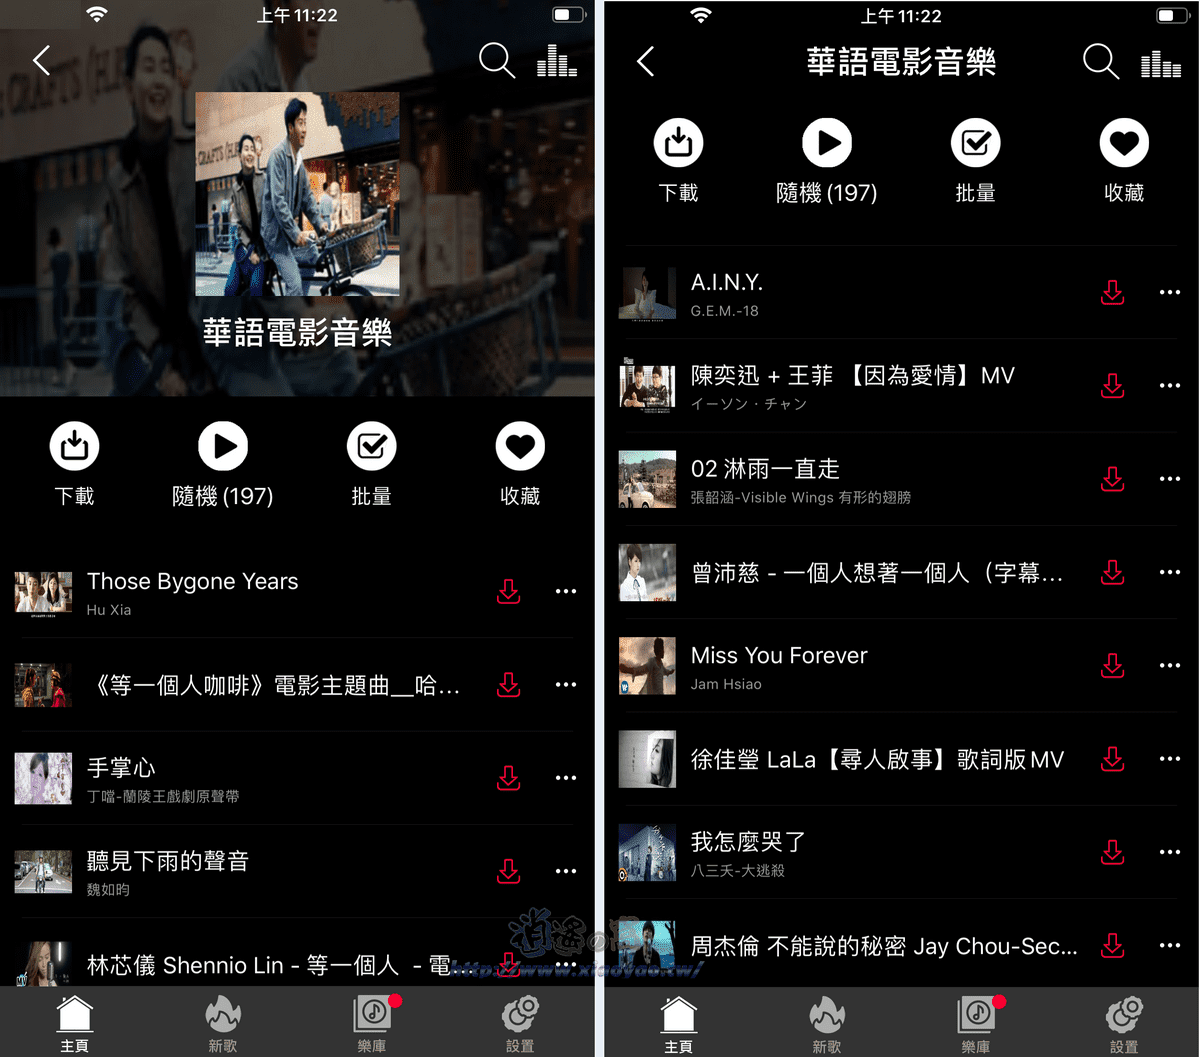 YoungTunes 免費音樂 App 兼具廣播電台